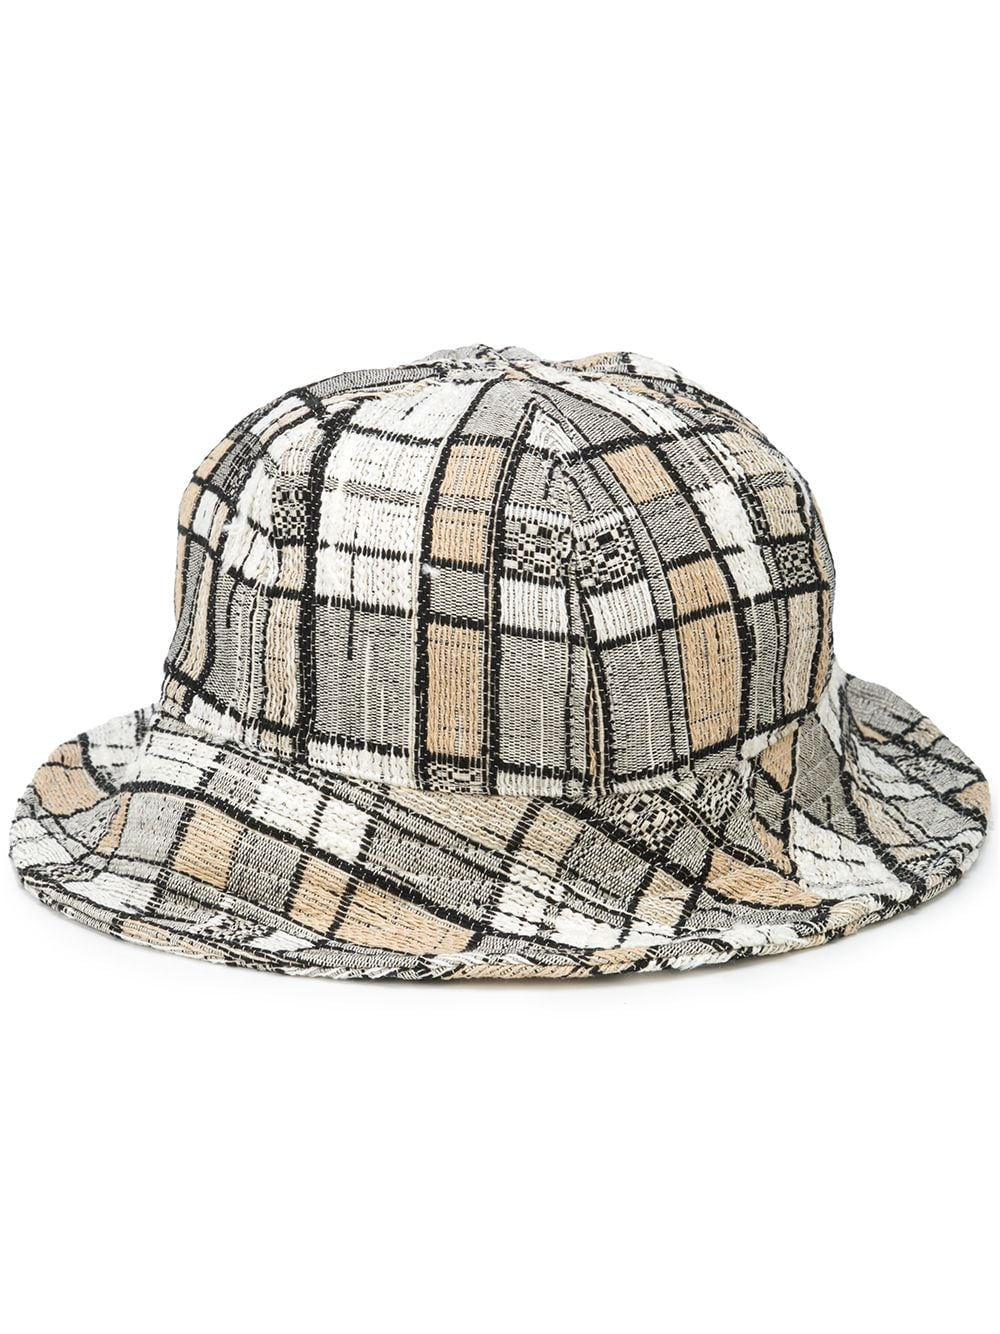 SONG FOR THE MUTE MEN BUCKET HAT